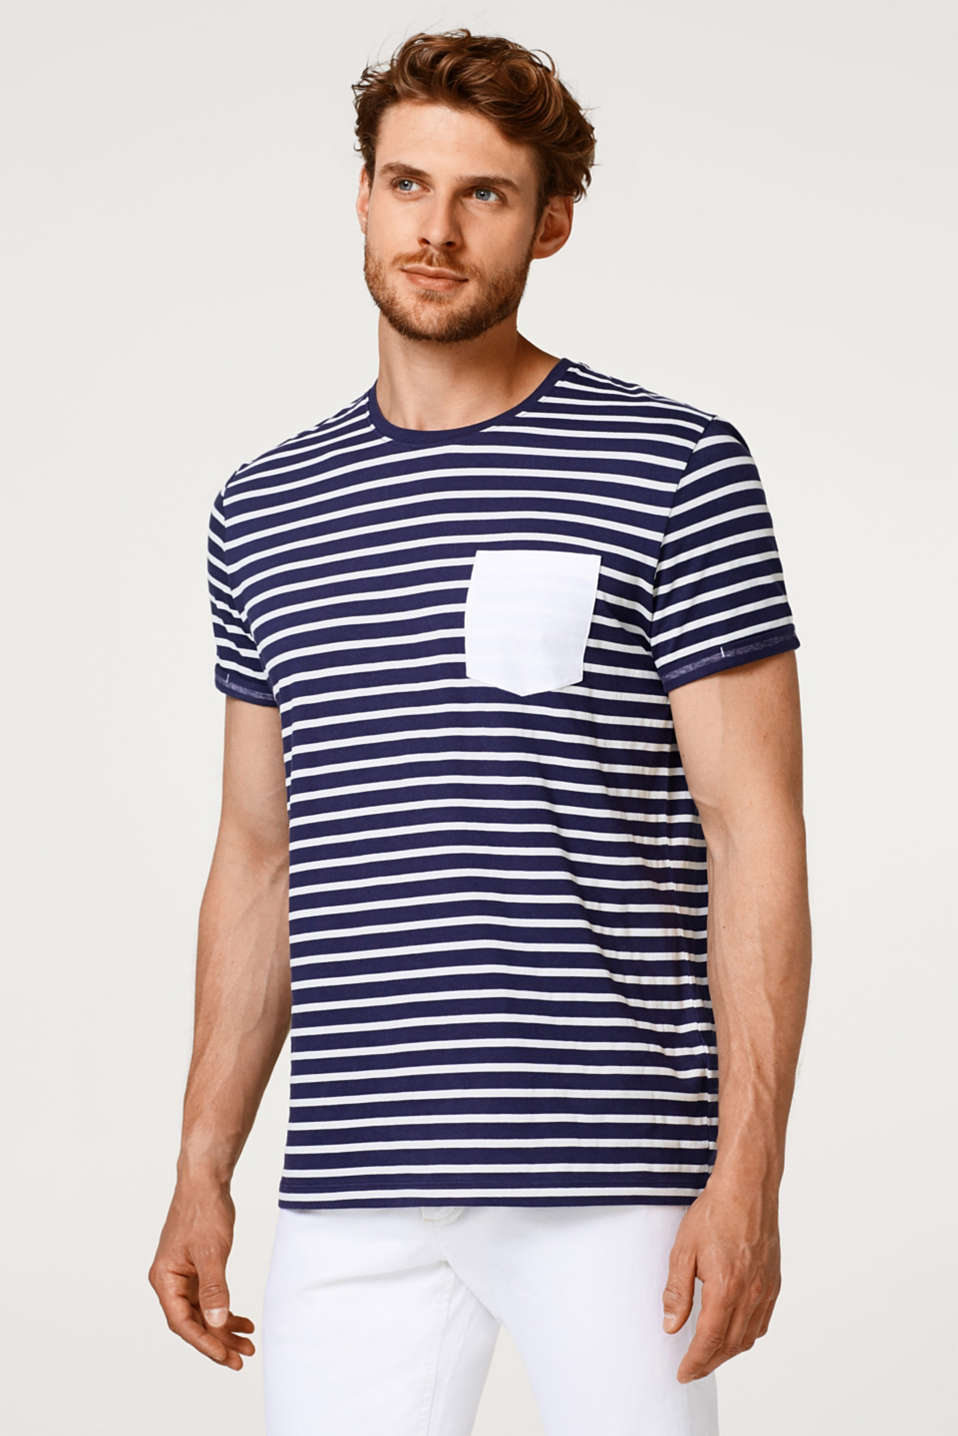 Esprit - Nautically striped T-shirt in cotton jersey